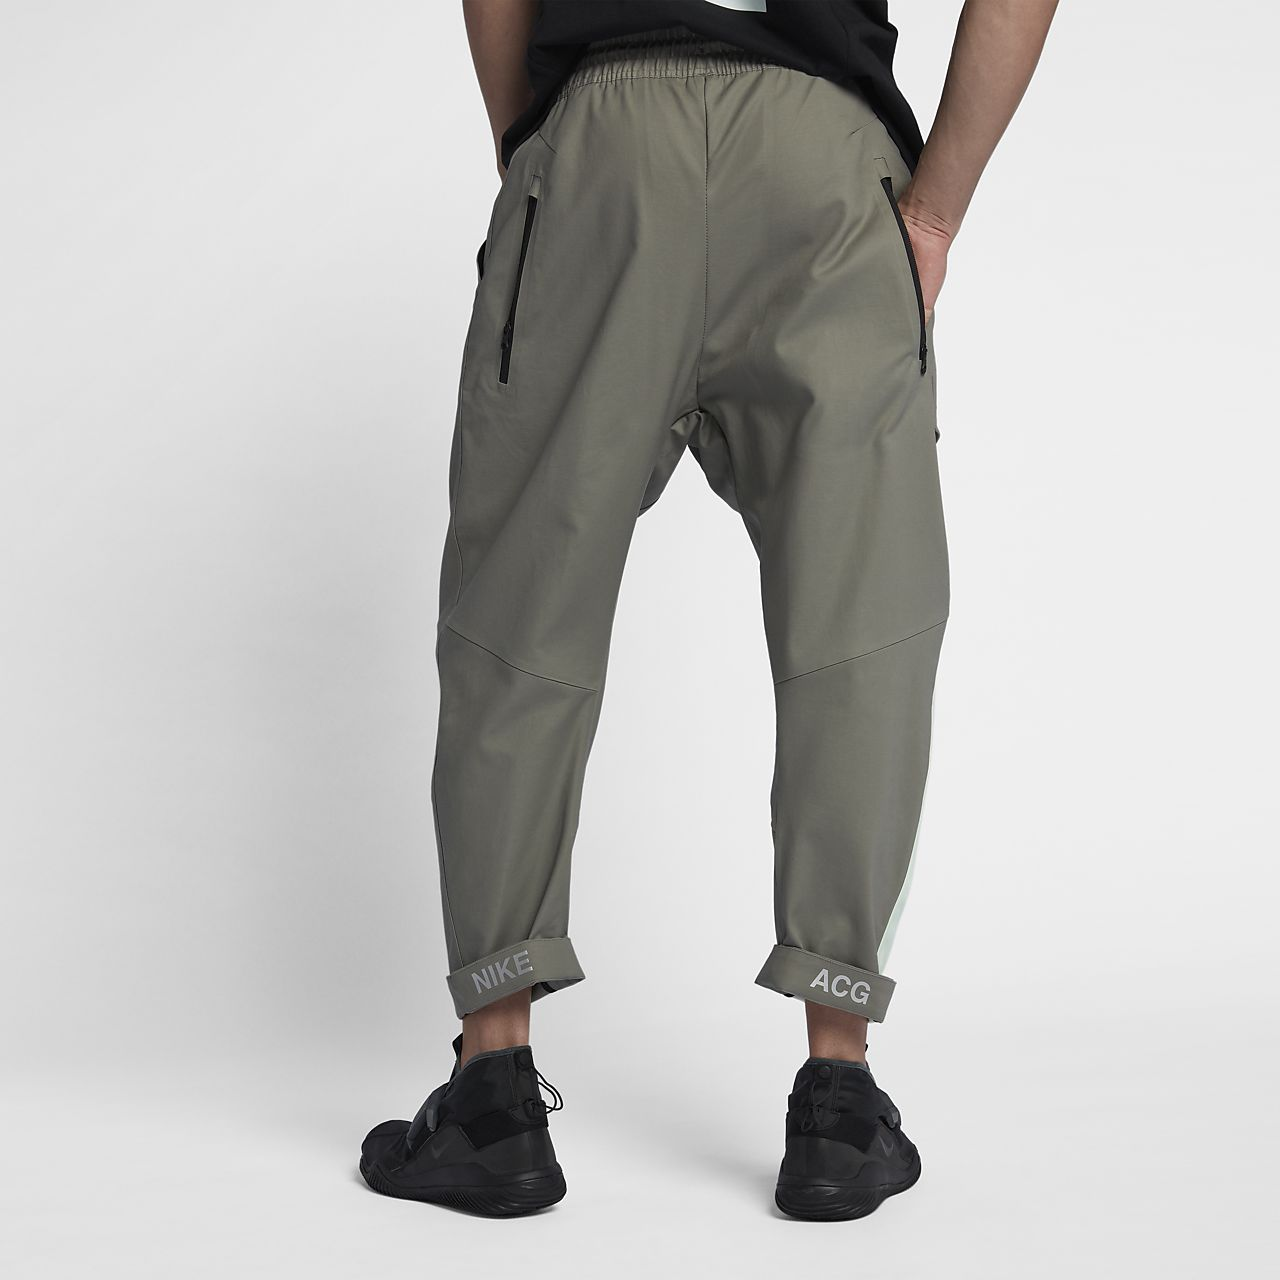 ca7ff80bebc3 NikeLab ACG Men s Trousers. Nike.com IN